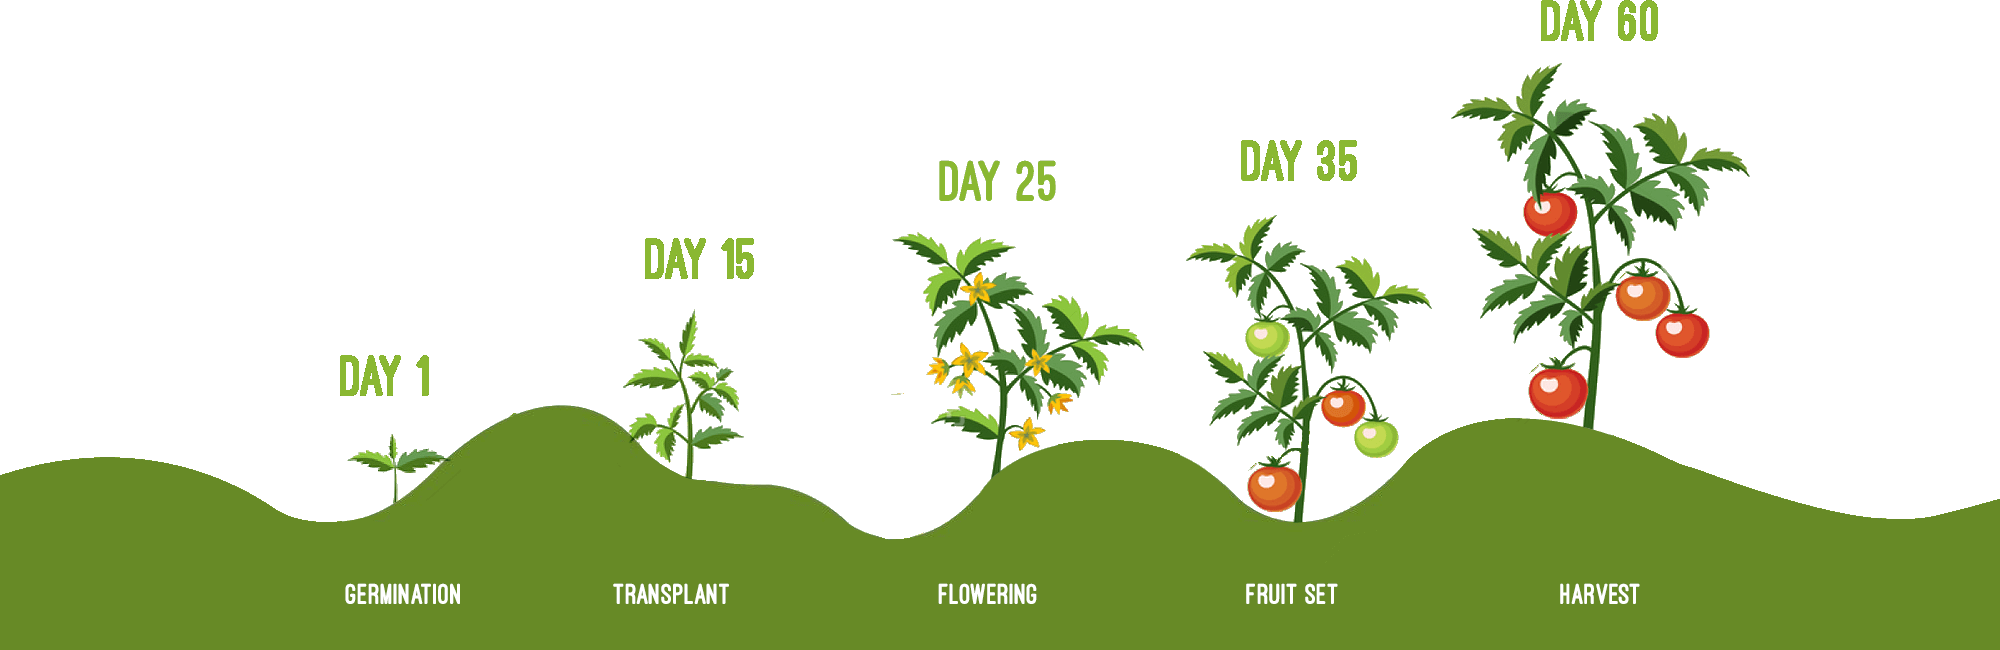 hydroponics crops growing time line